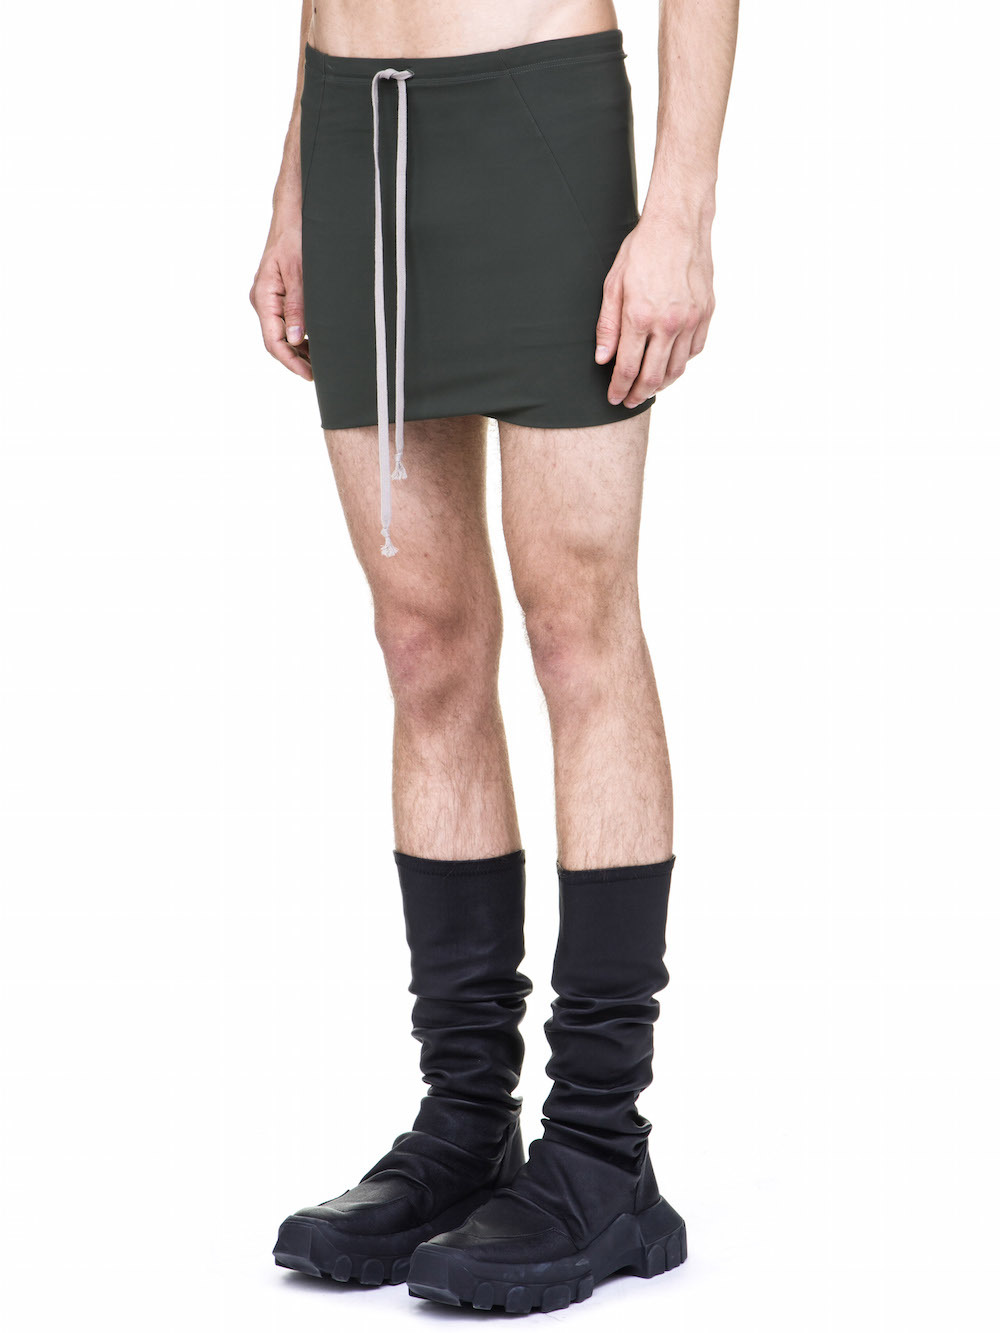 RICK OWENS BATHING TRUNK IN FOREST GREEN